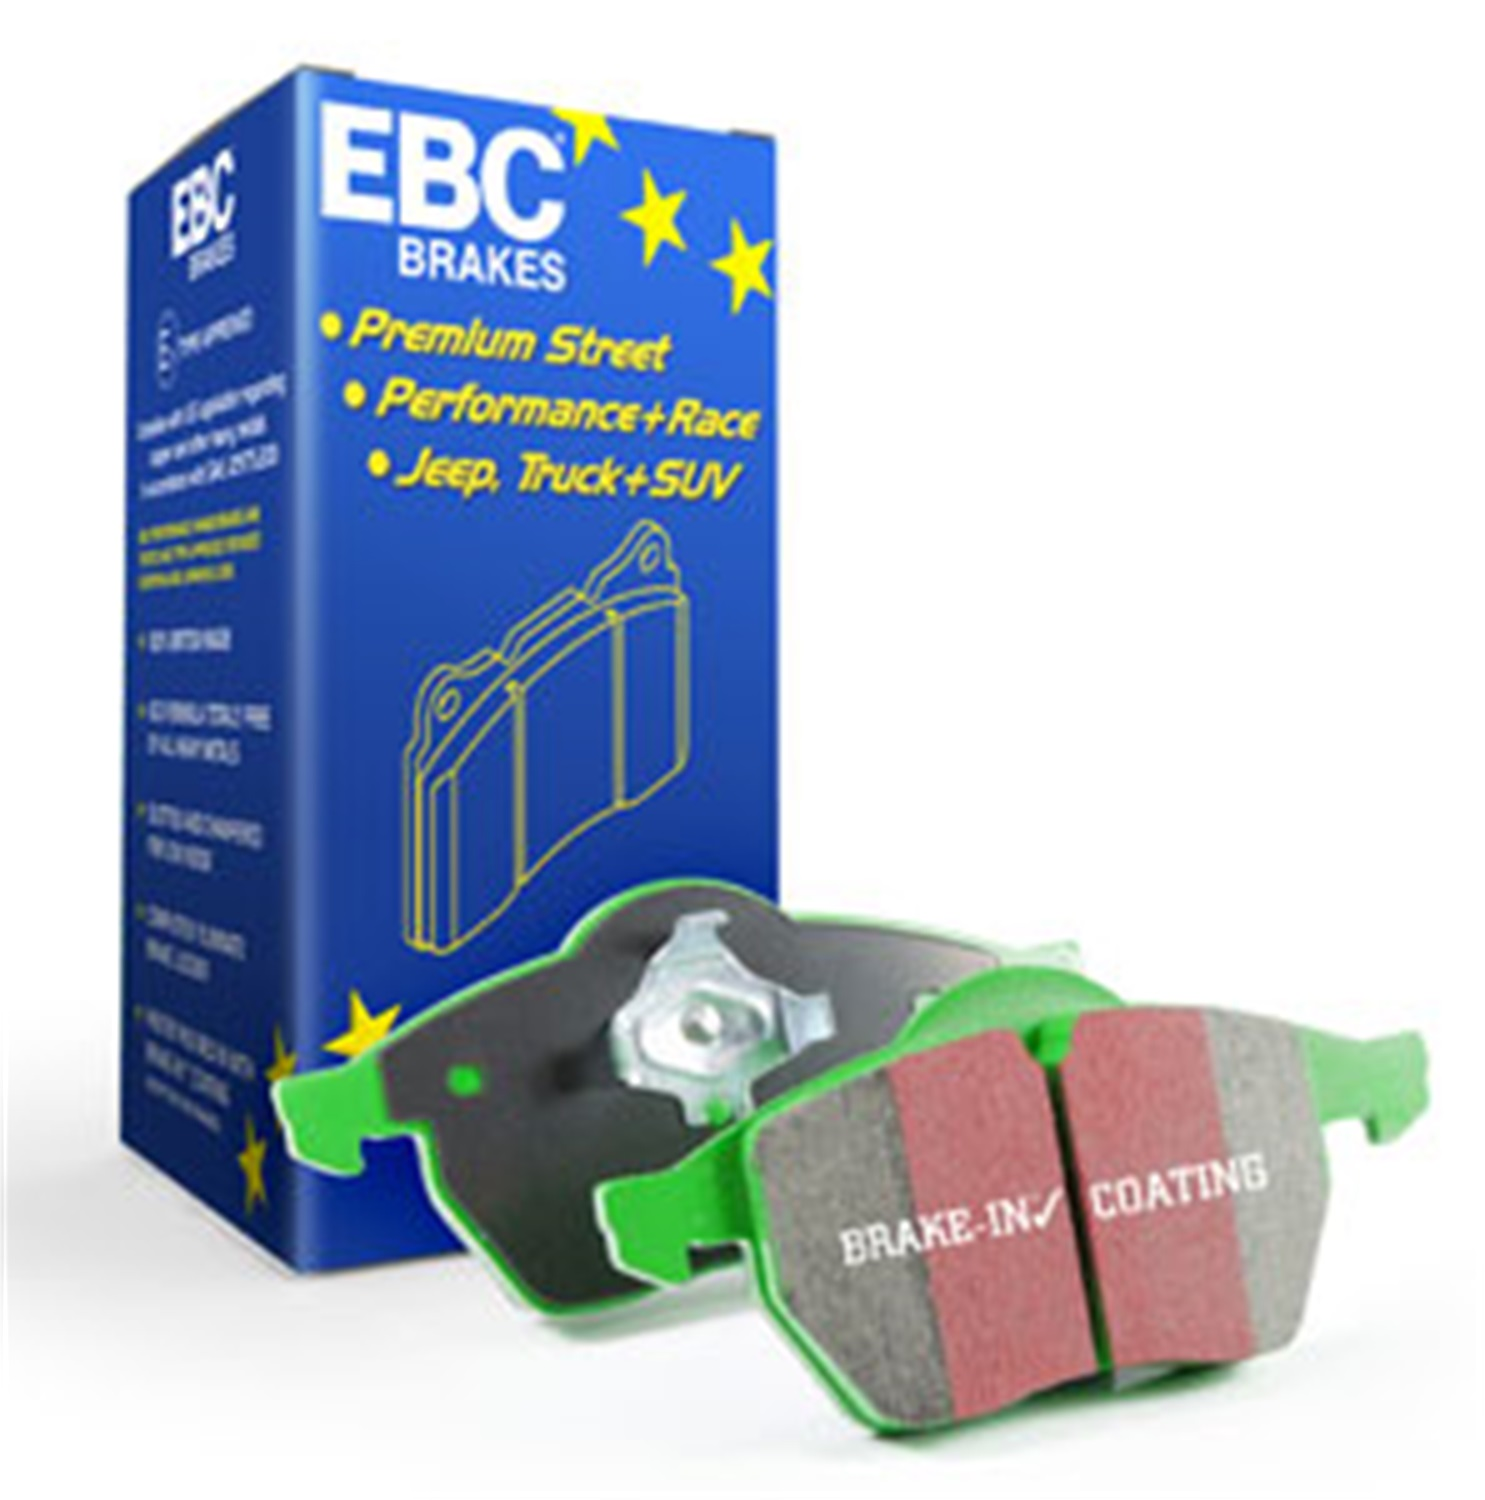 EBC Brakes Disc Brake Pad (DP21772)